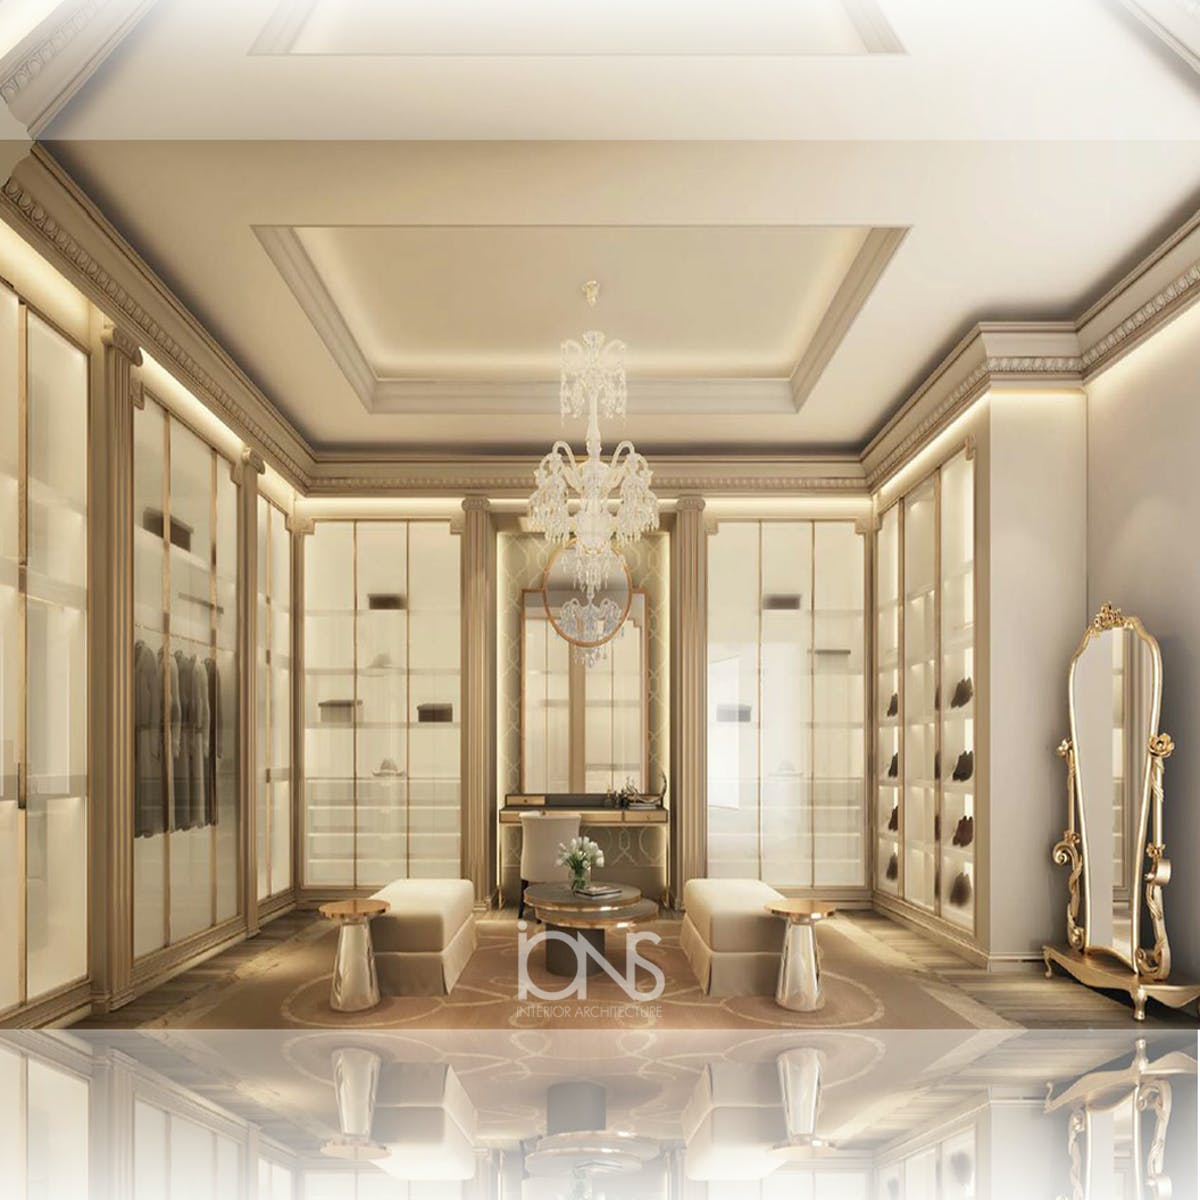 Ions Interior Design Dubai exceptional walk-in closet interiors | ions design | archinect